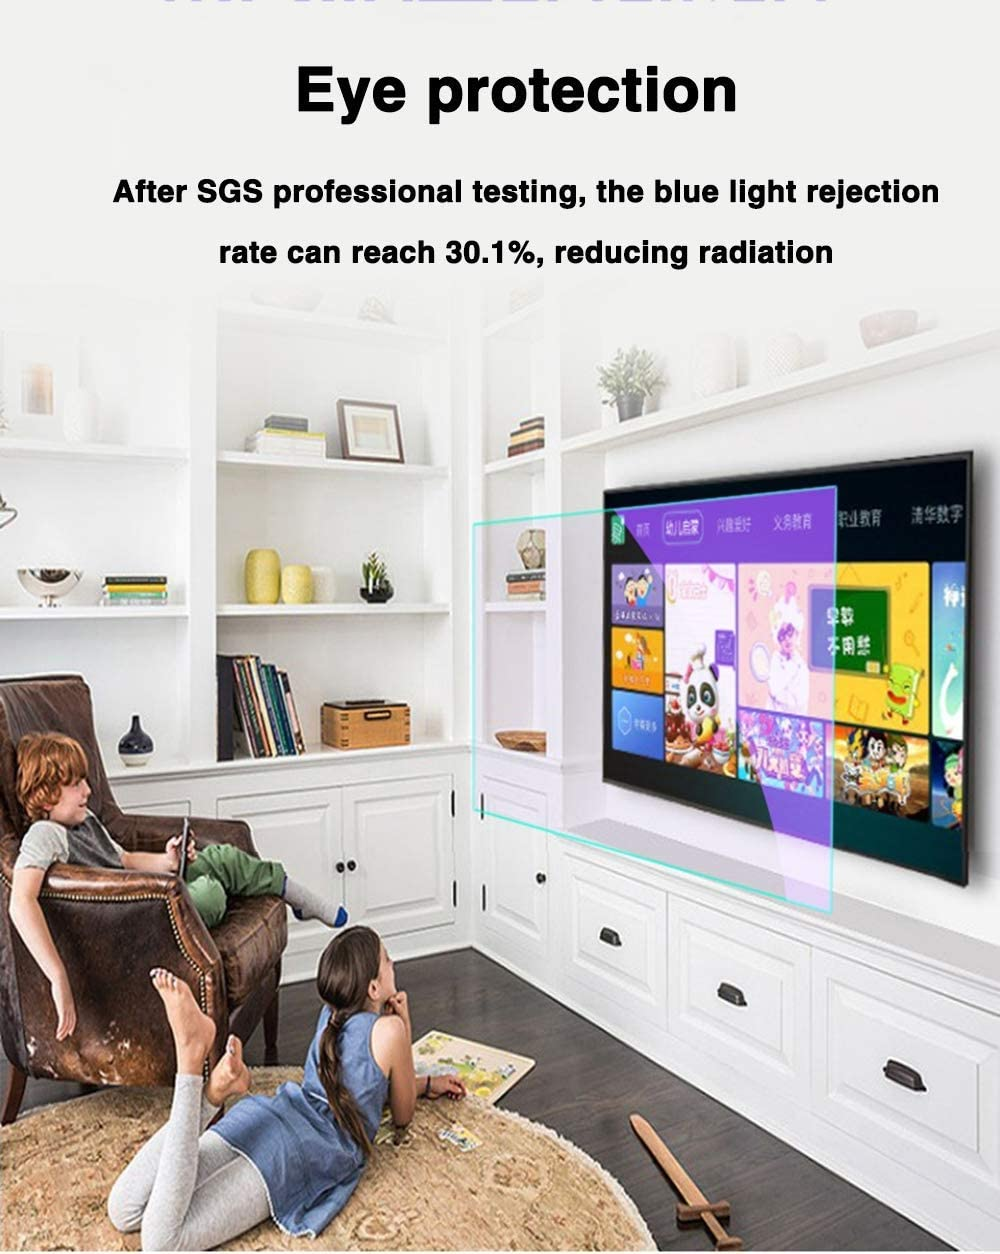 LED CUUYQ 50 Inches TV Screen Protector Non-Glare Anti-Blue Light Ultra-Clear Protector Film Anti-Scratch Eye Protection for LCD OLED /& QLED 4K HDTV,A